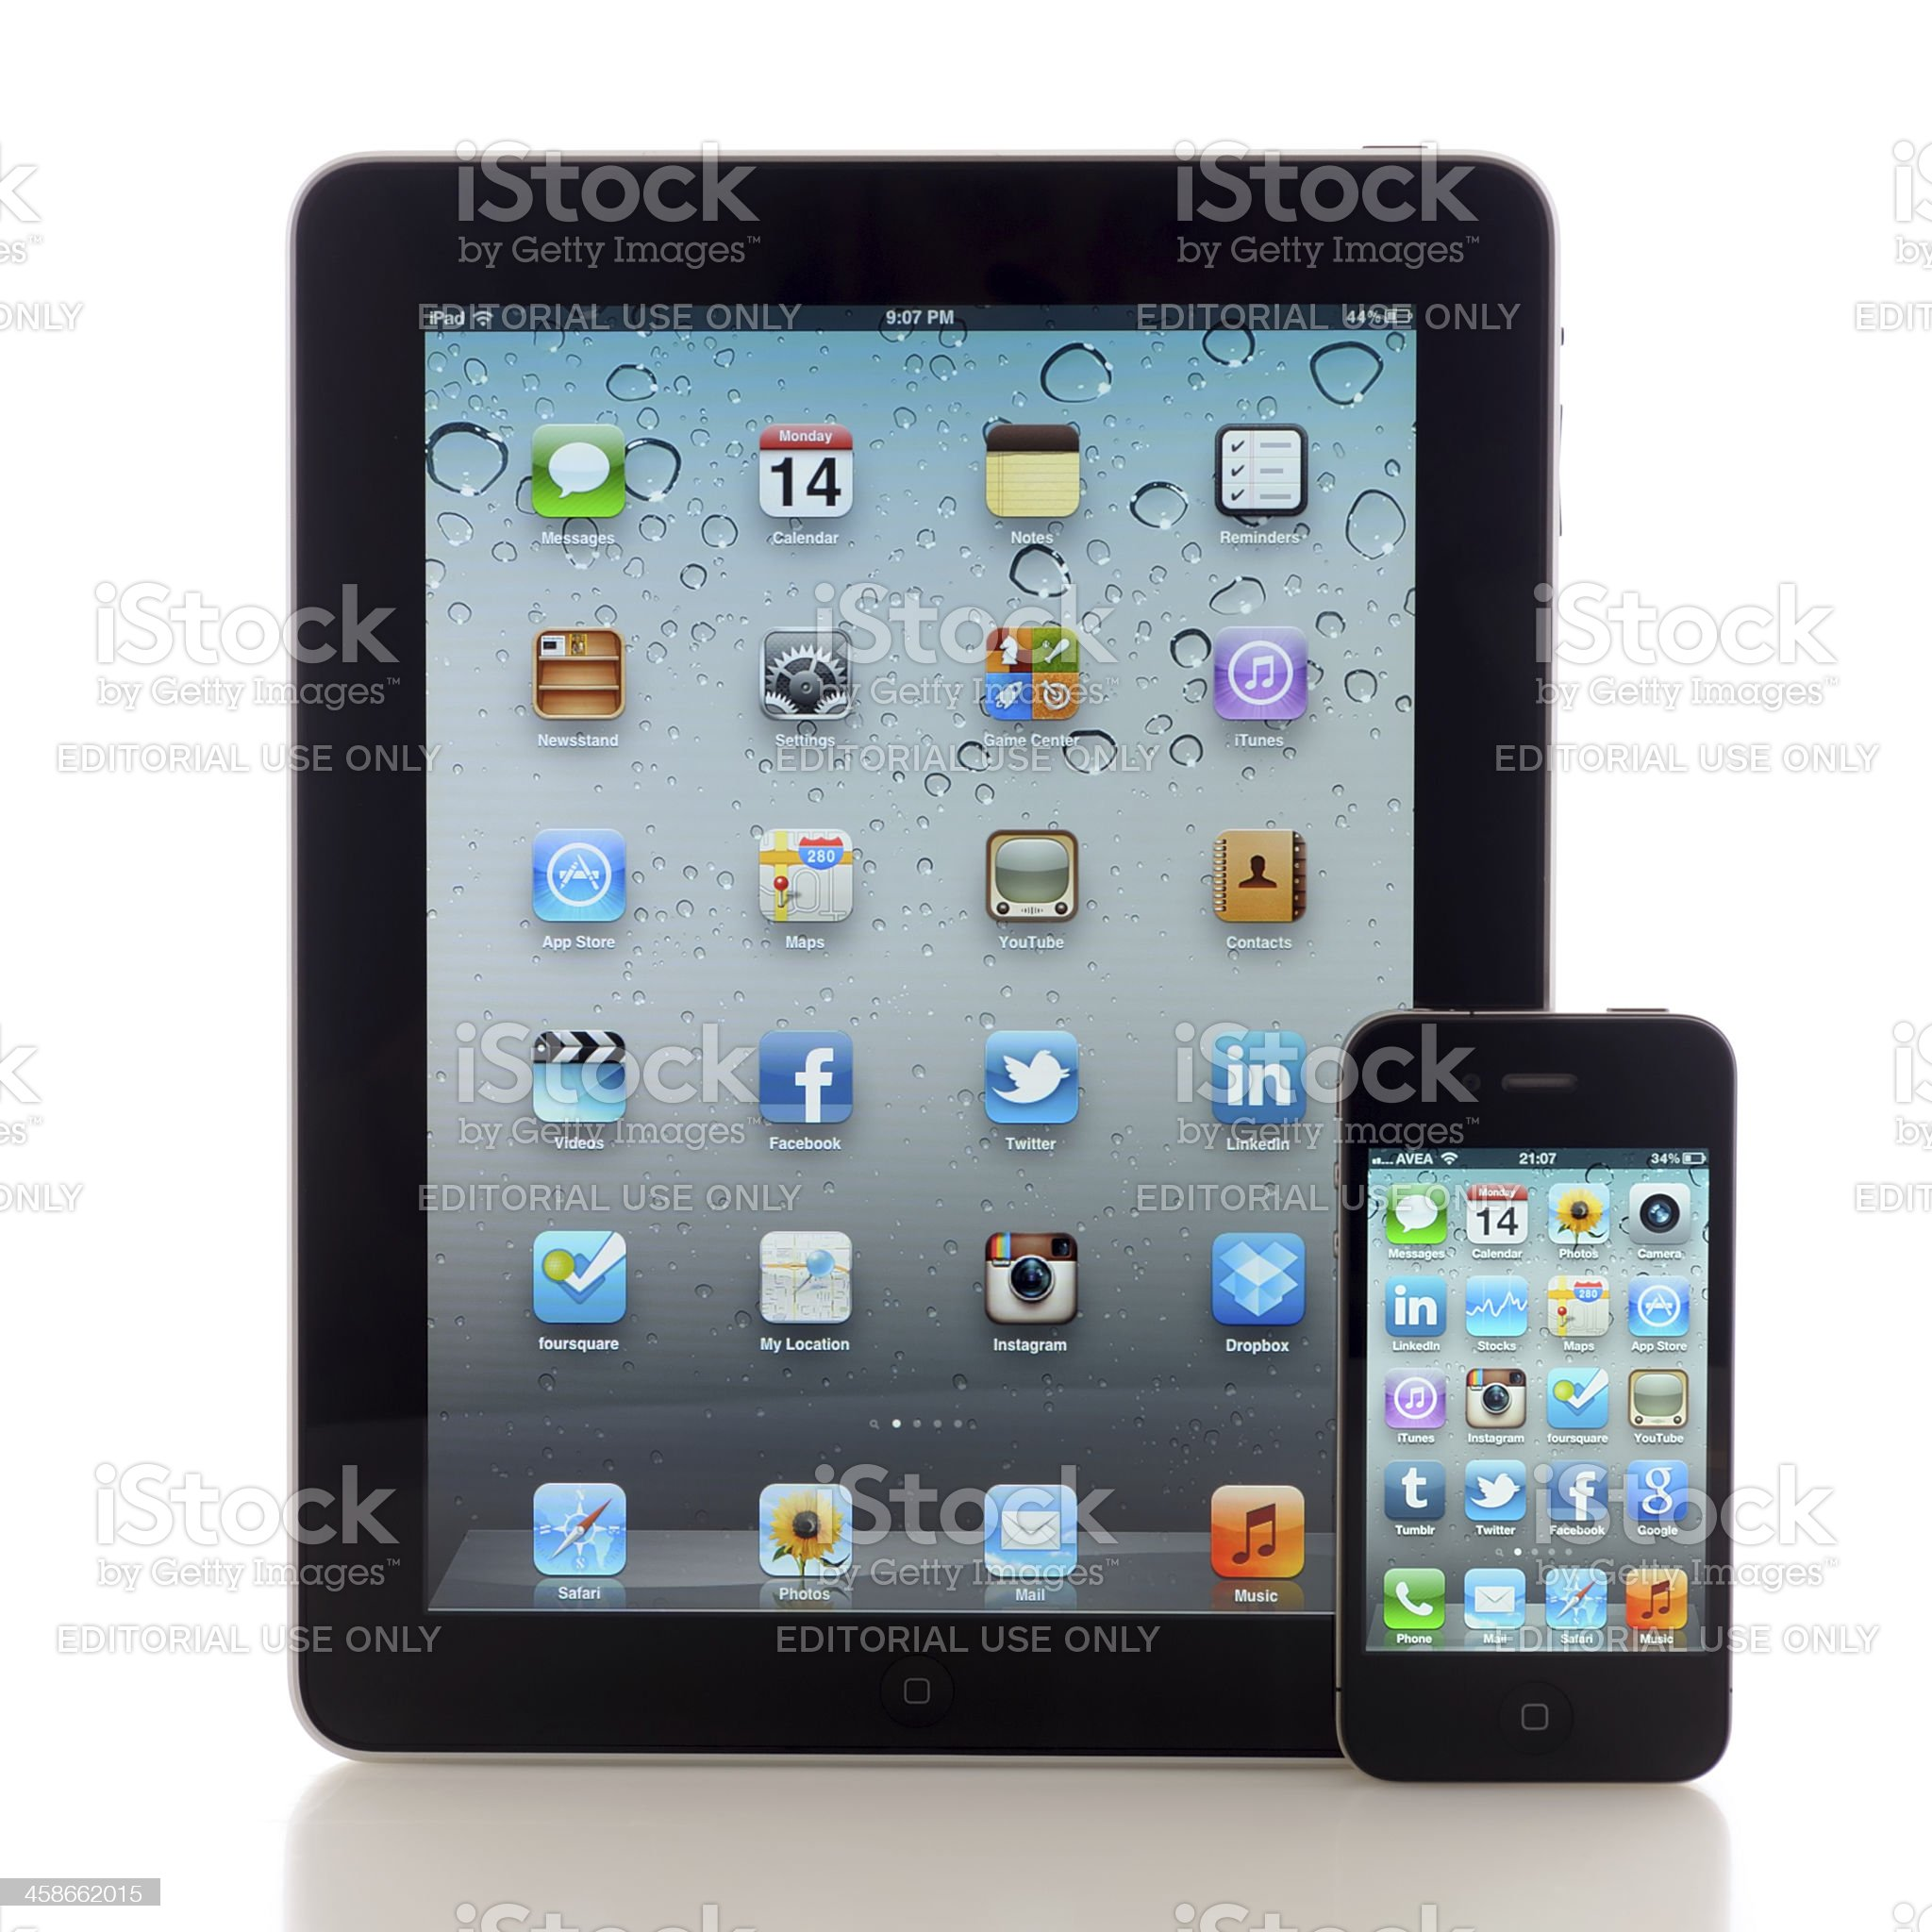 iPad and iPhone 4 royalty-free stock photo